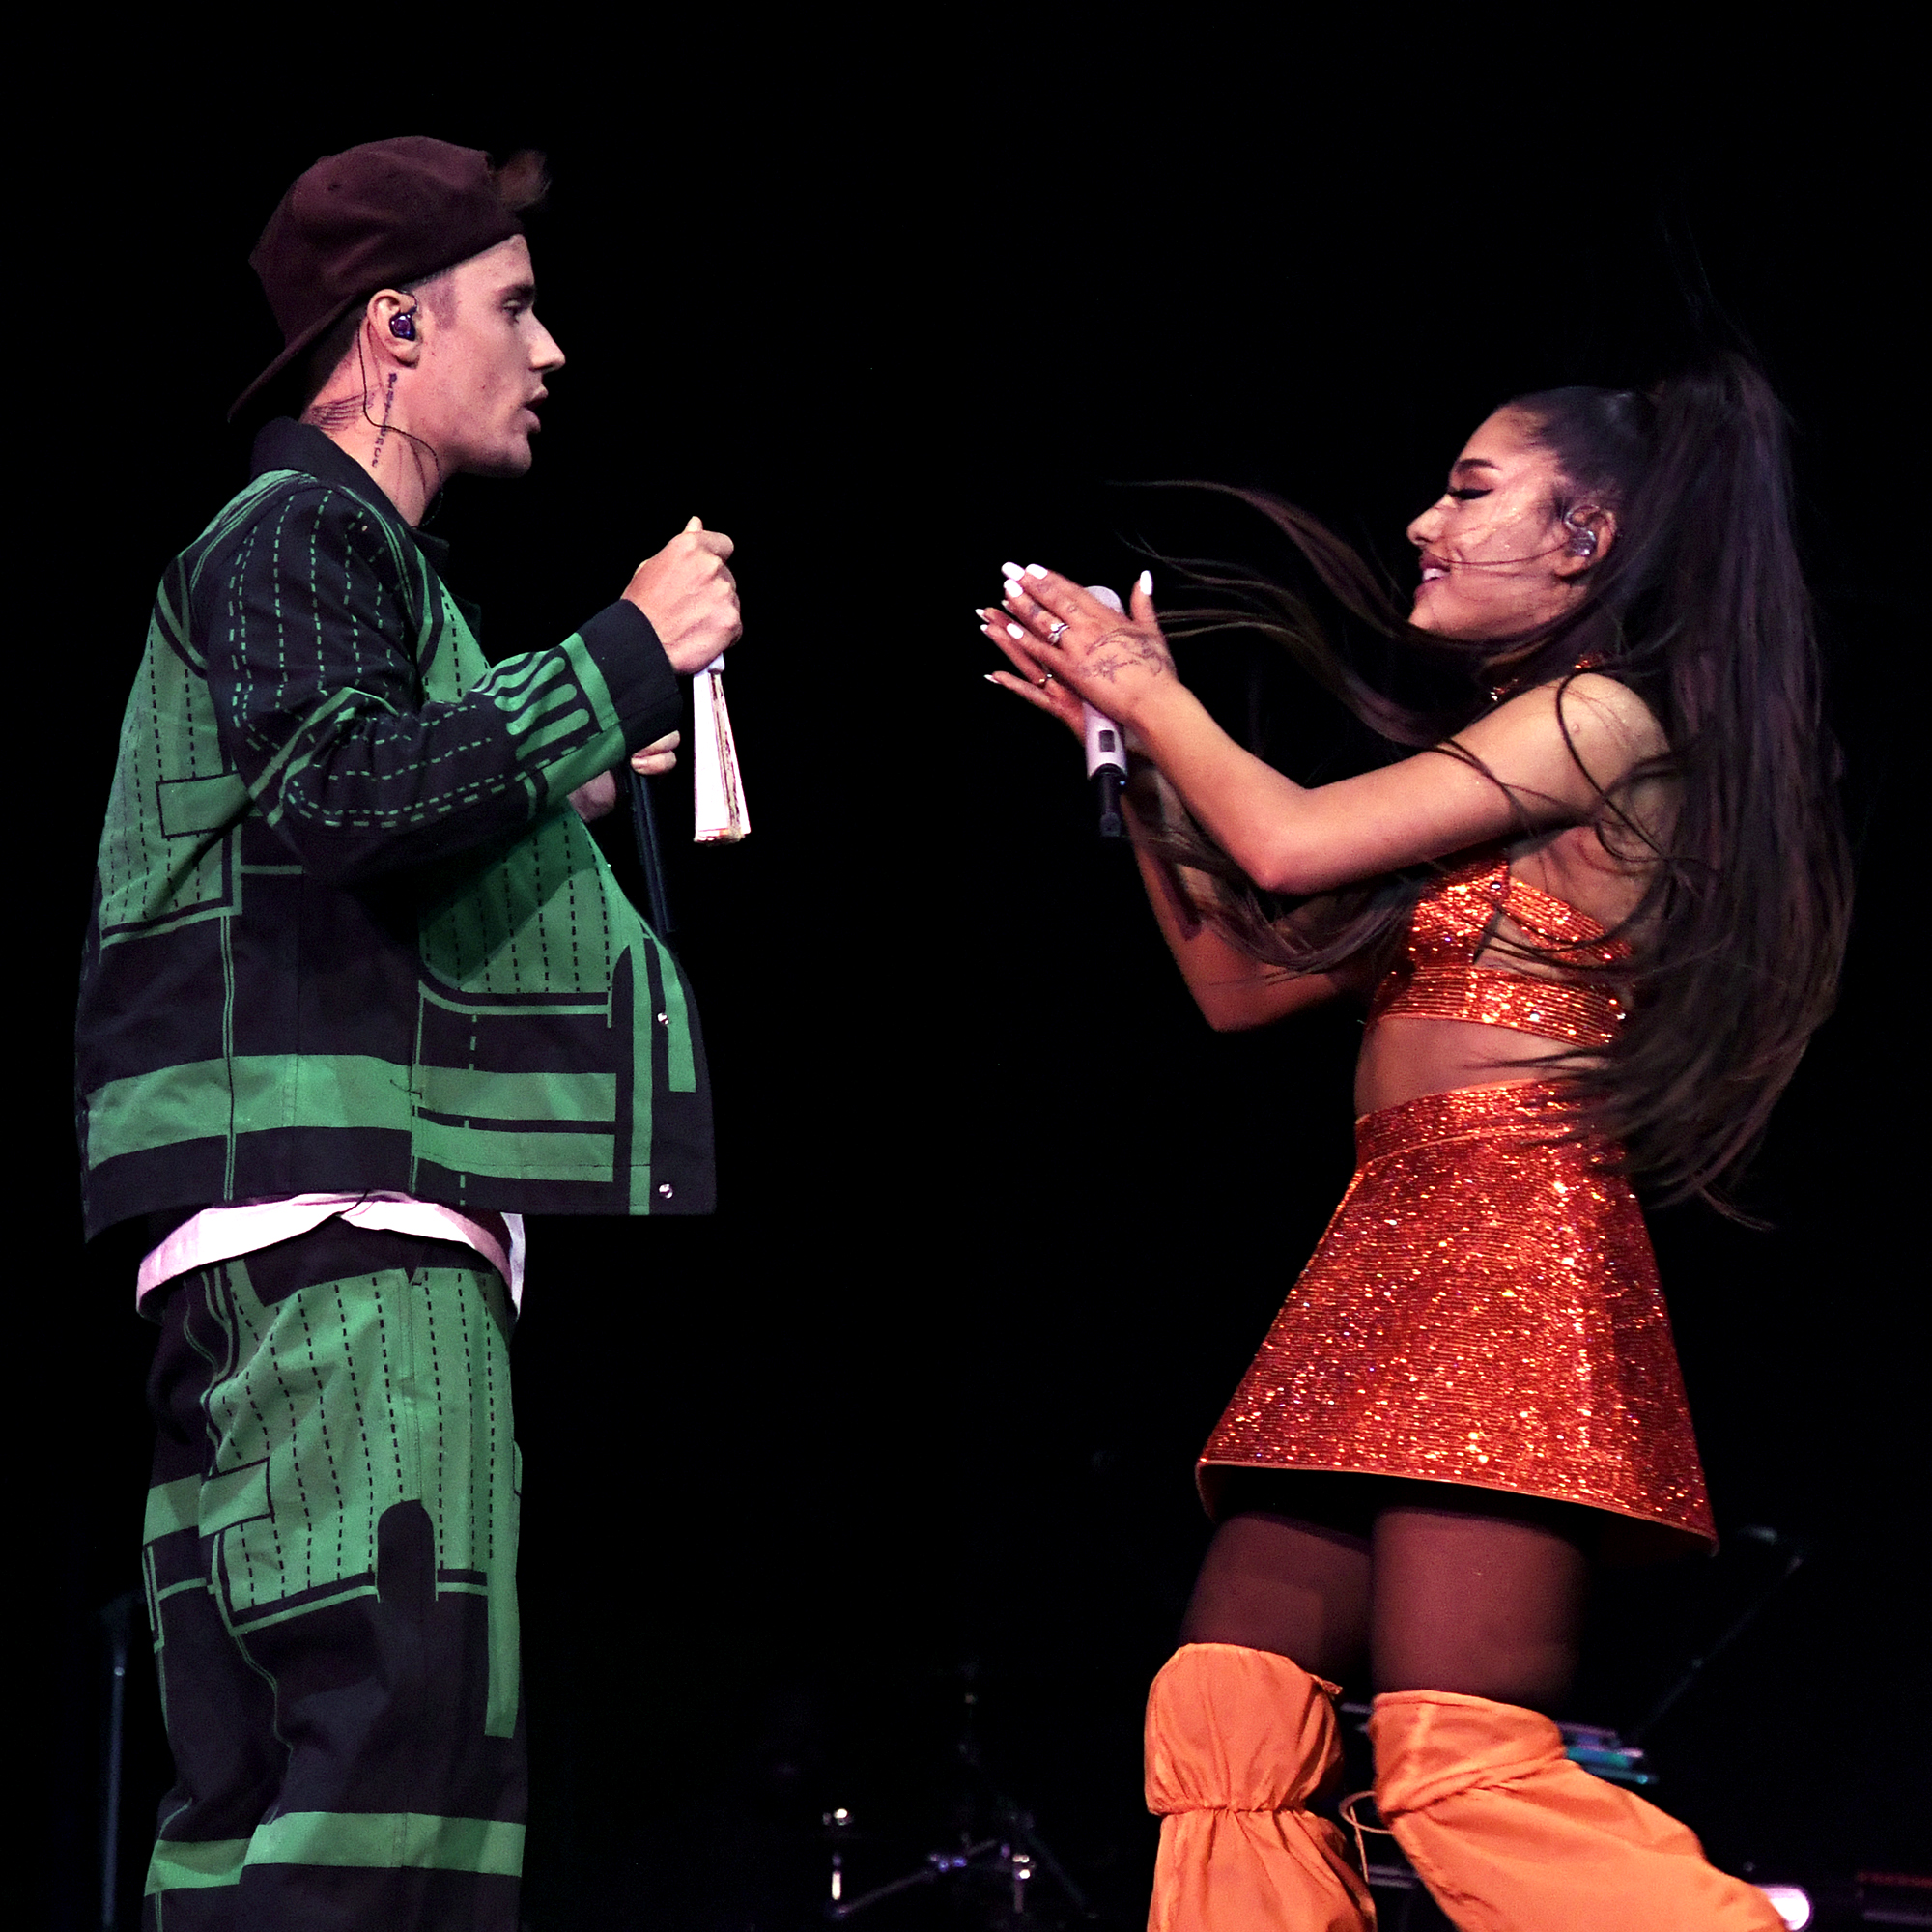 Bieber performs with Ariana Grande at Coachella